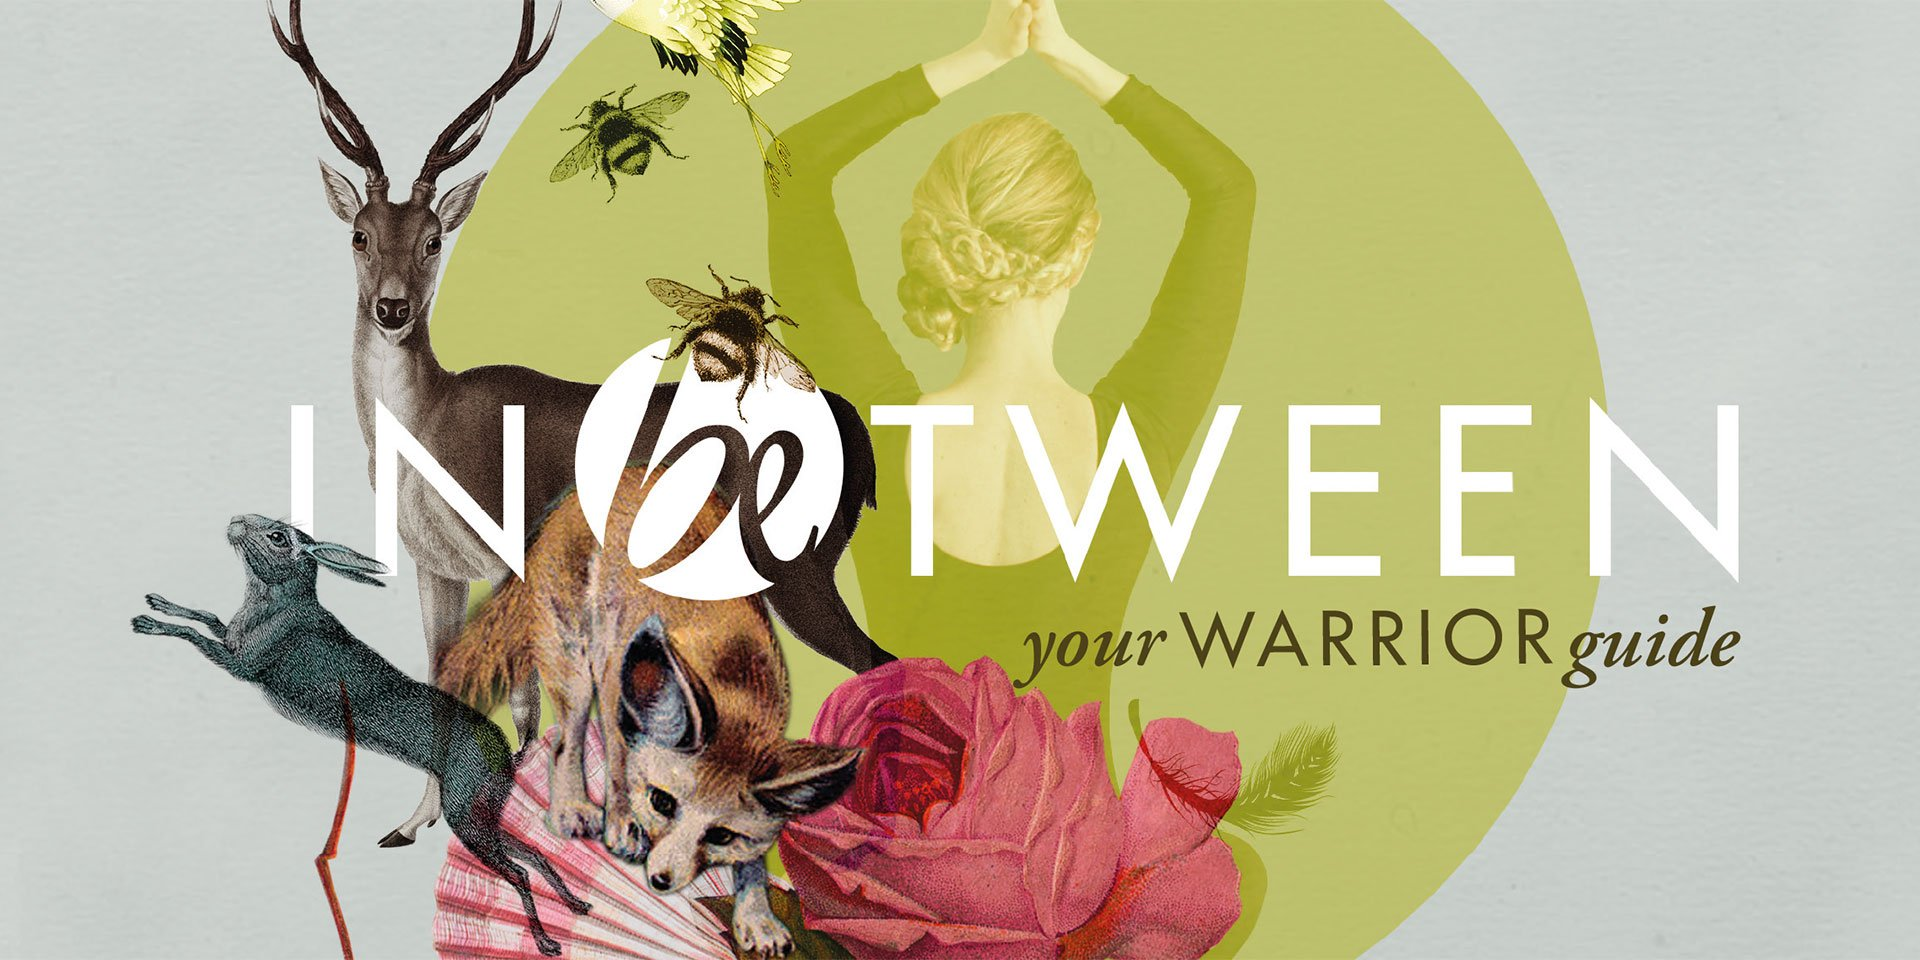 Inbetween Book cover art with woman in yoga pose, stags, foxes, roses, bees and a hare